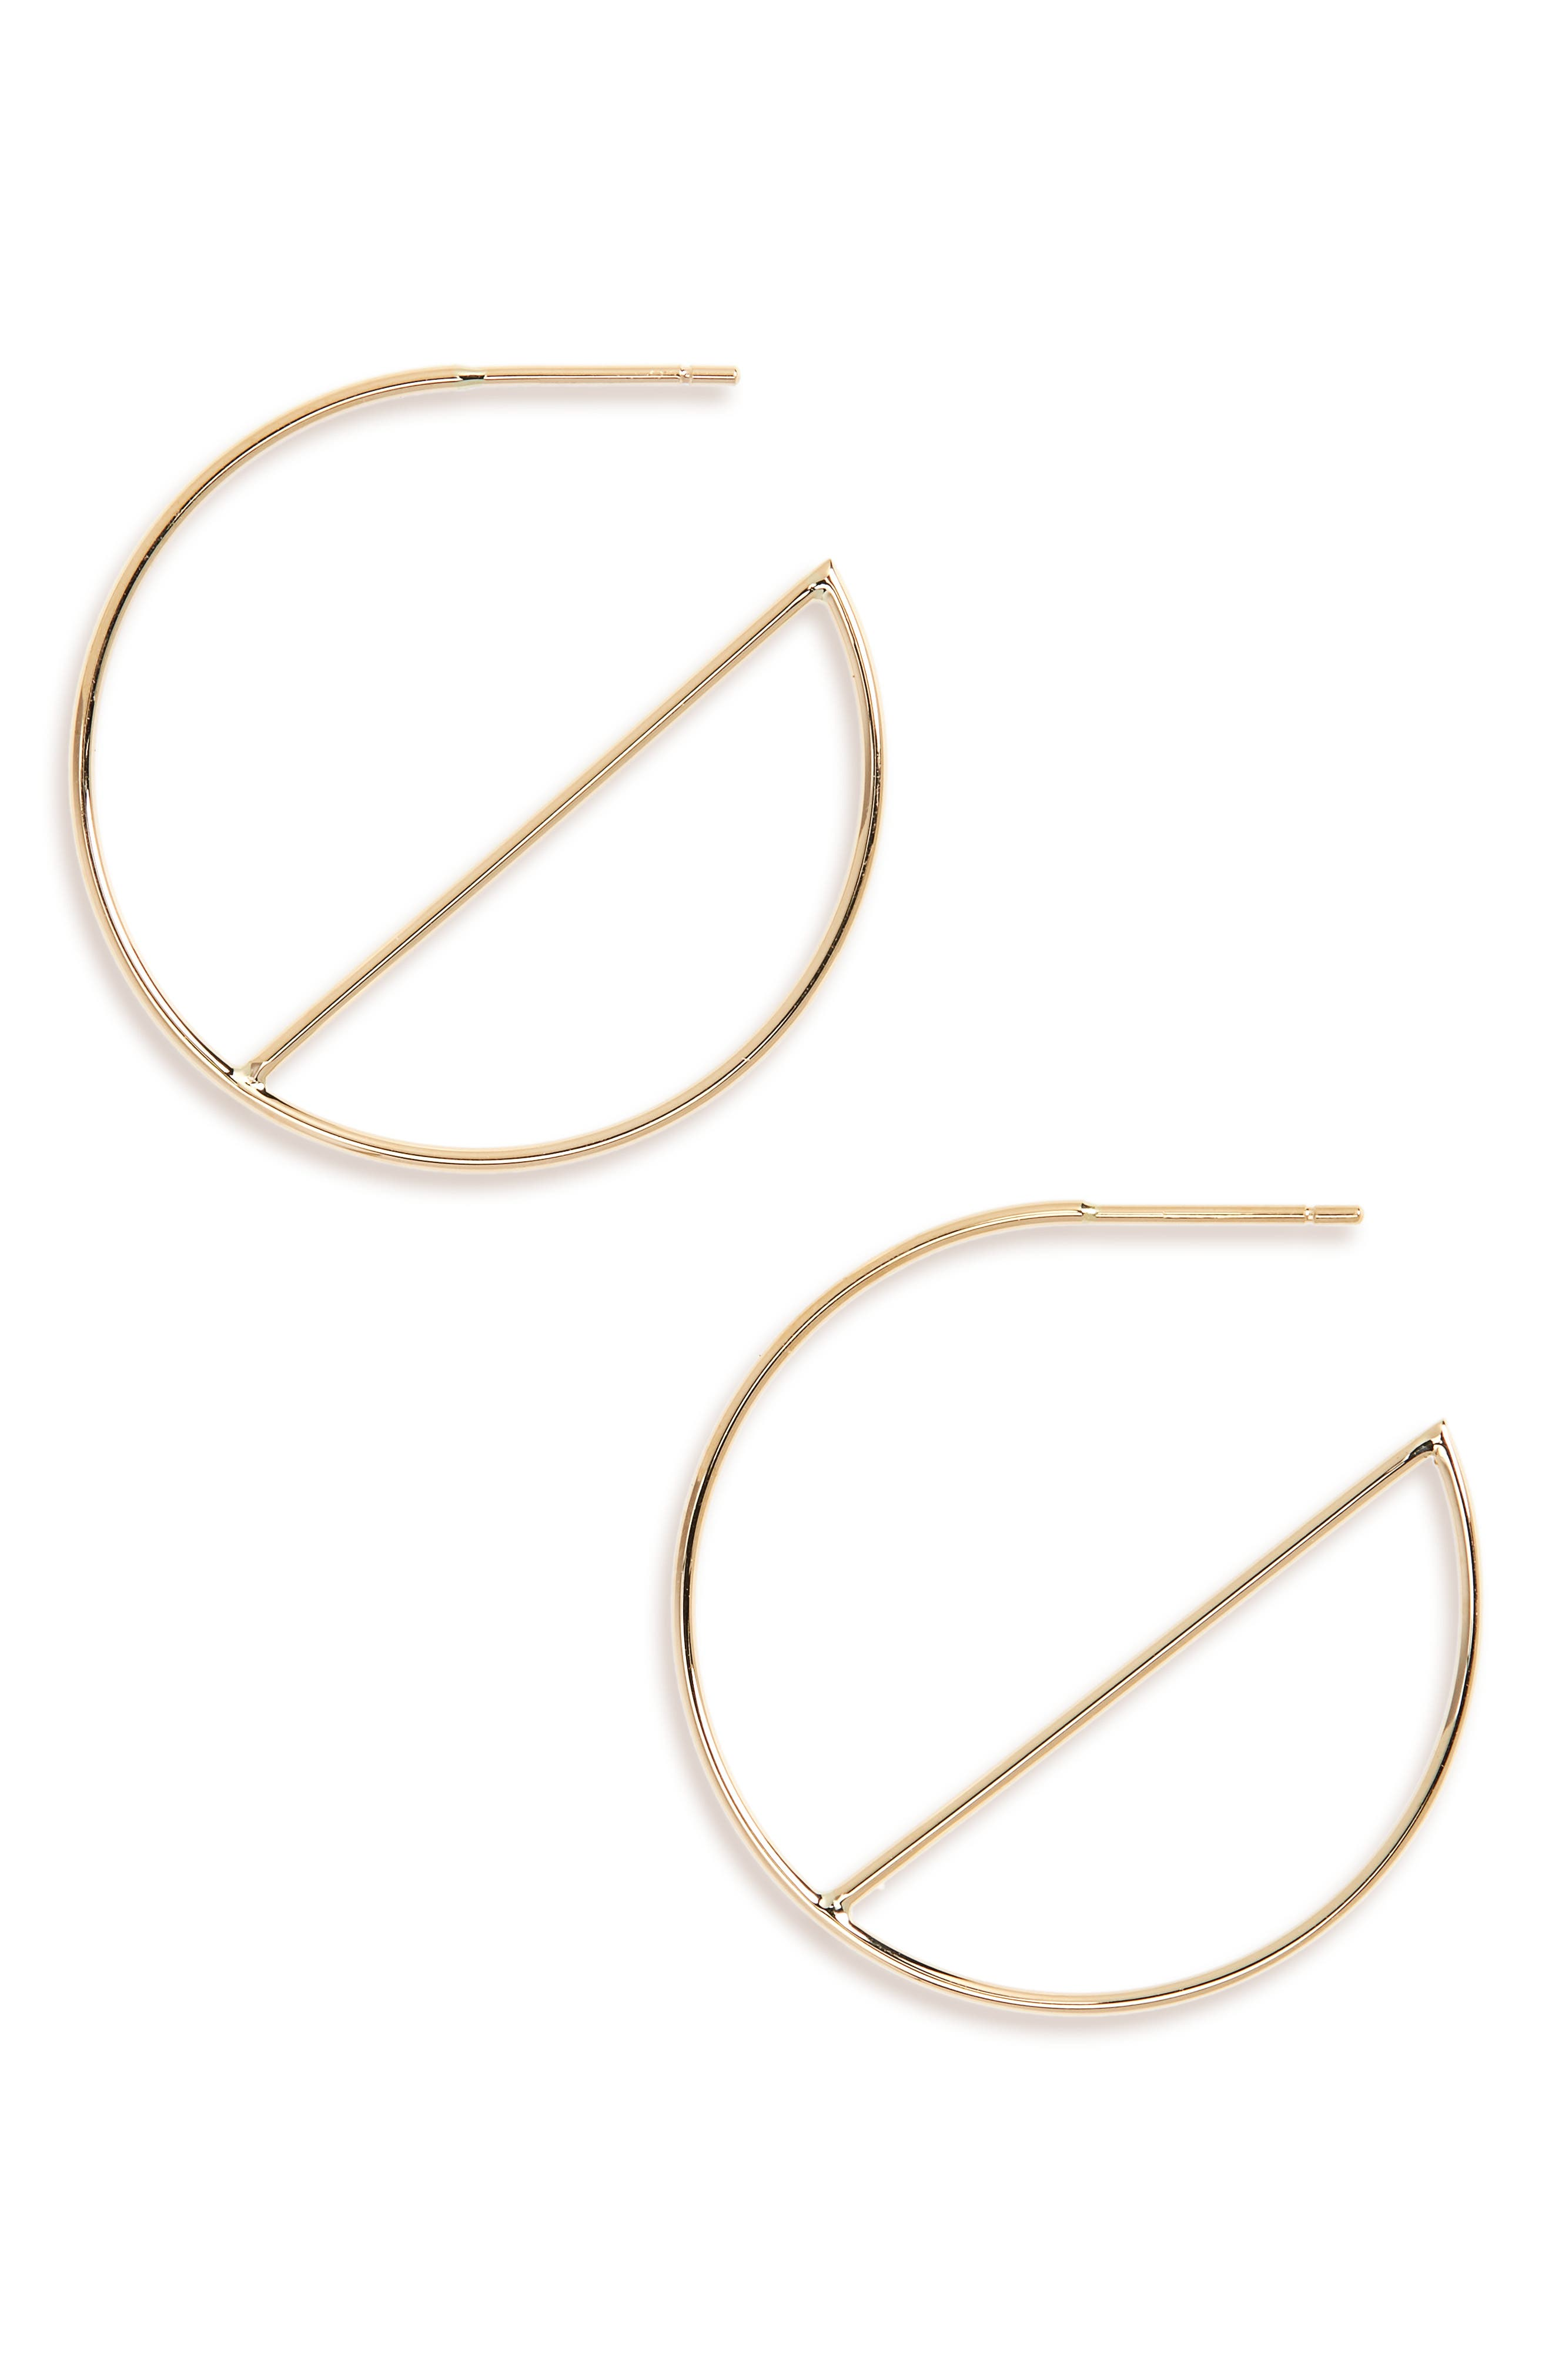 LANA JEWELRY,                             Wire Eclipse Hoops,                             Main thumbnail 1, color,                             710